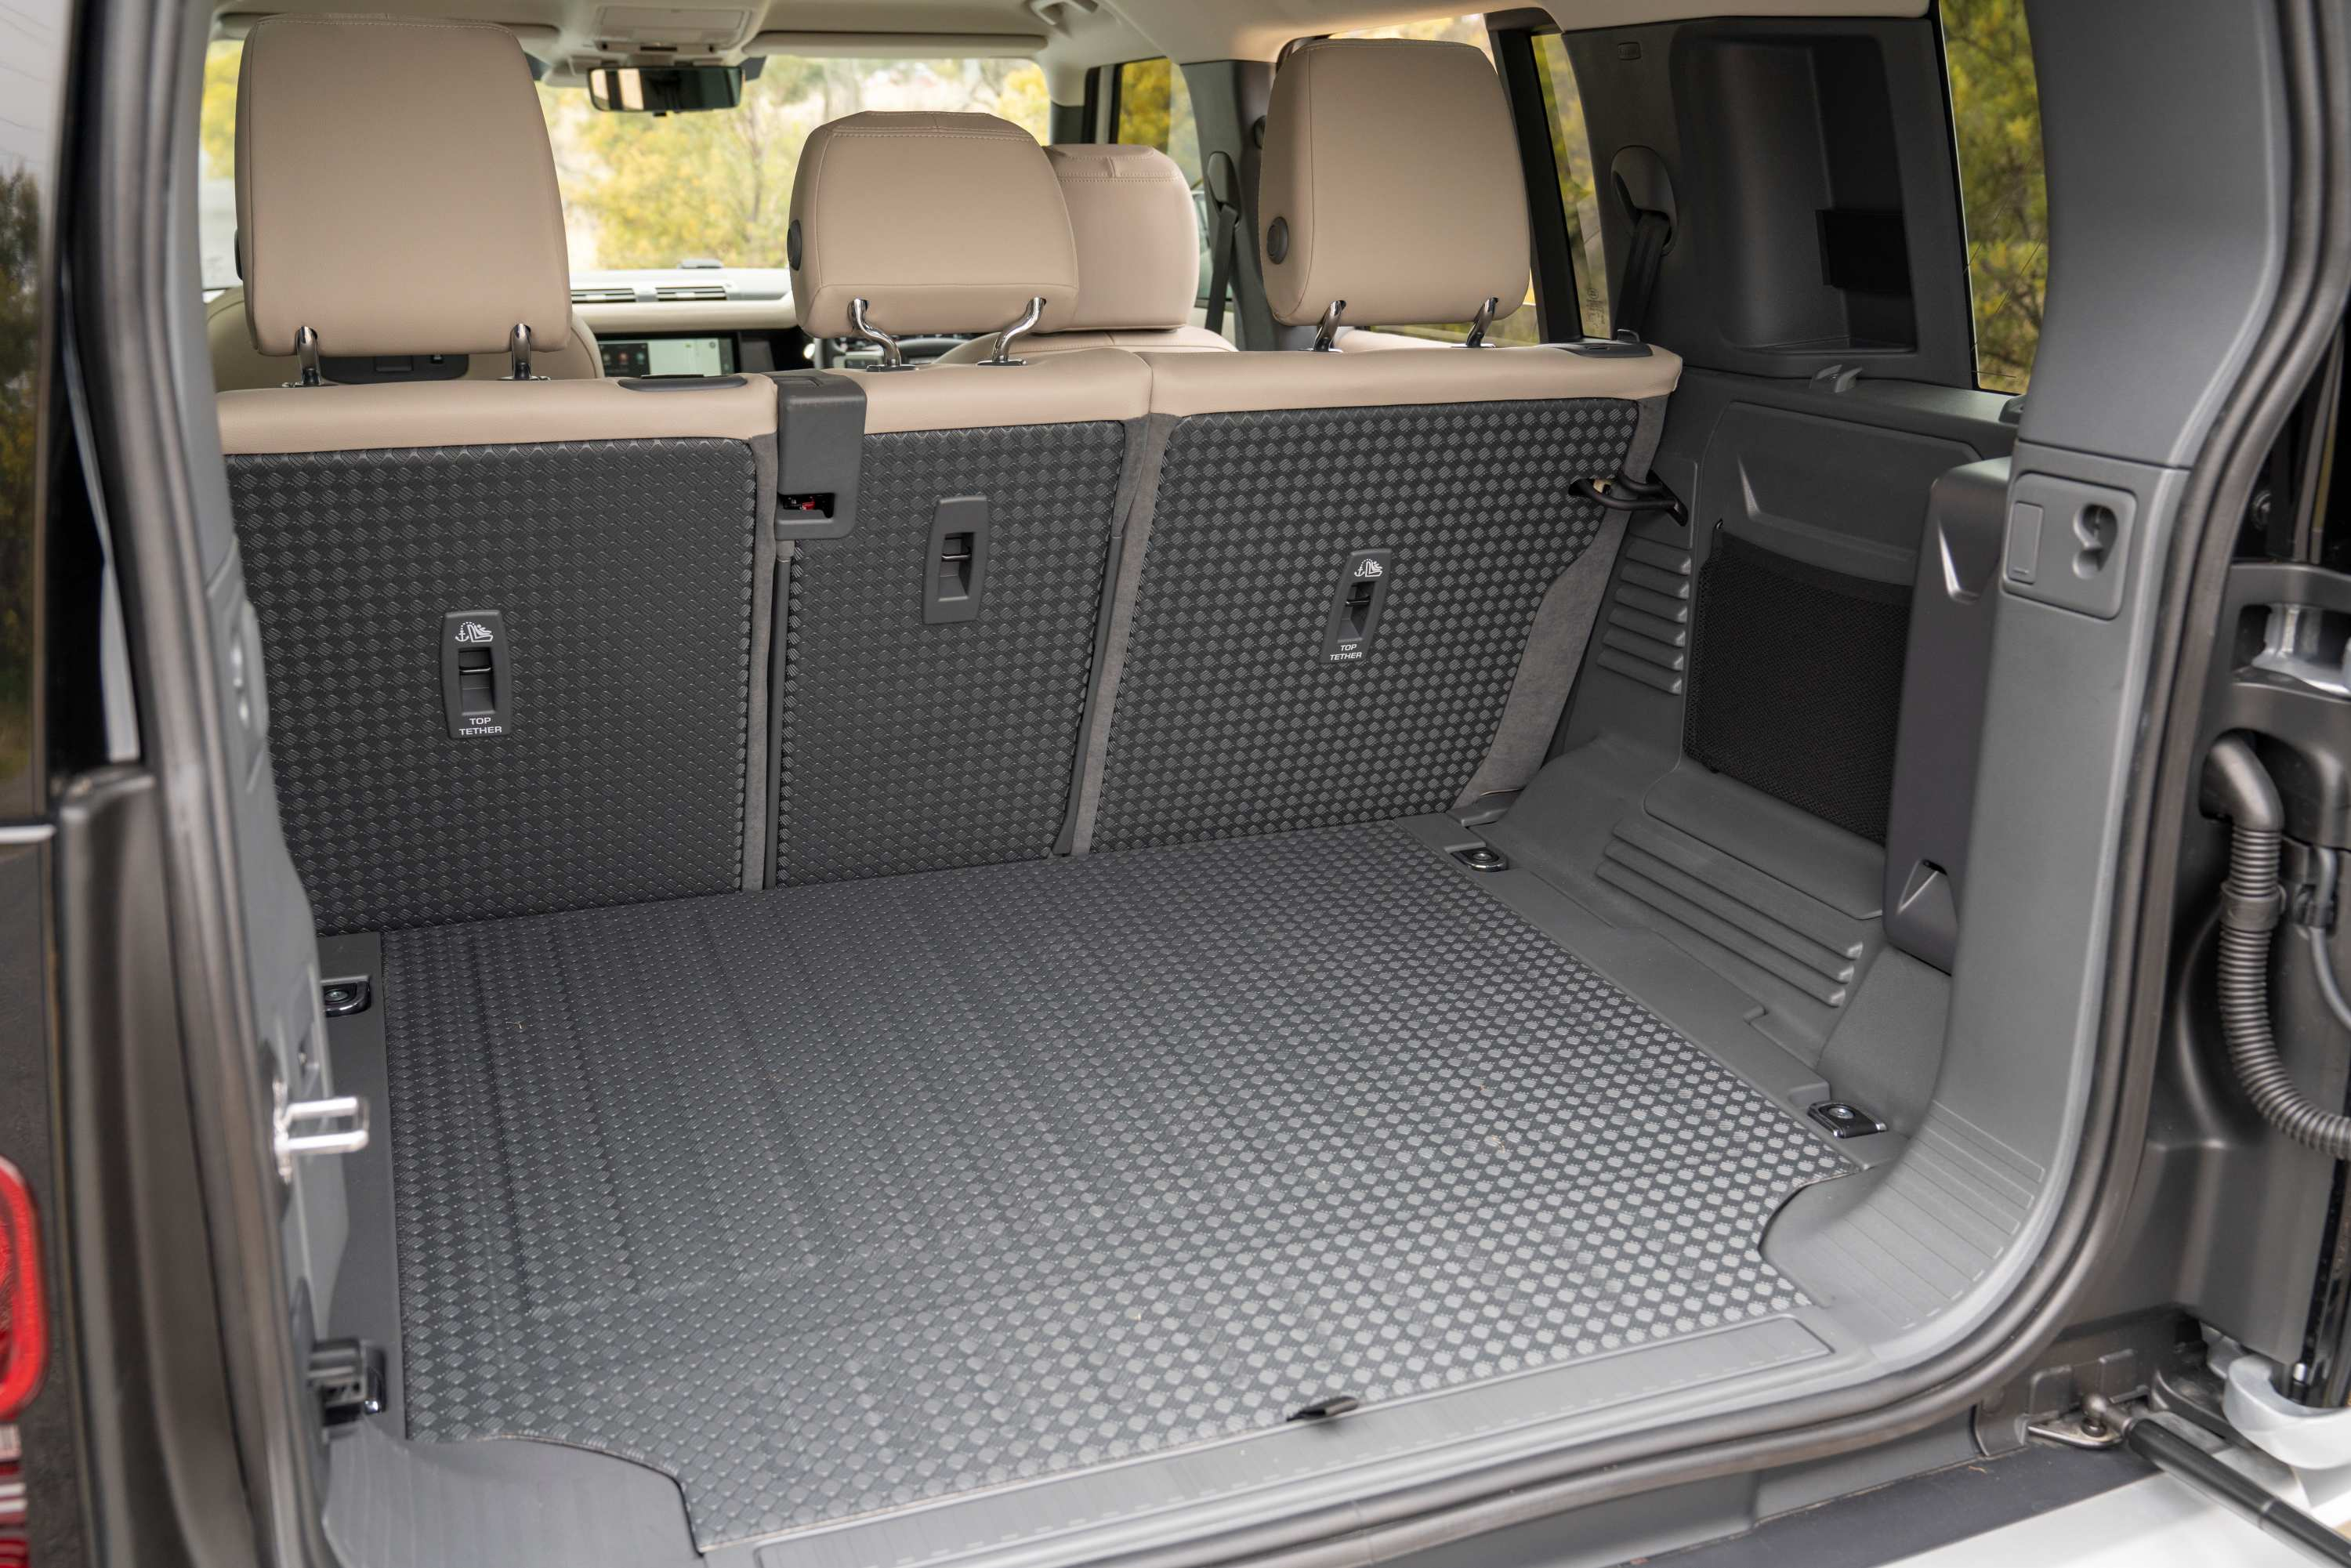 Land Rover Defender boot area